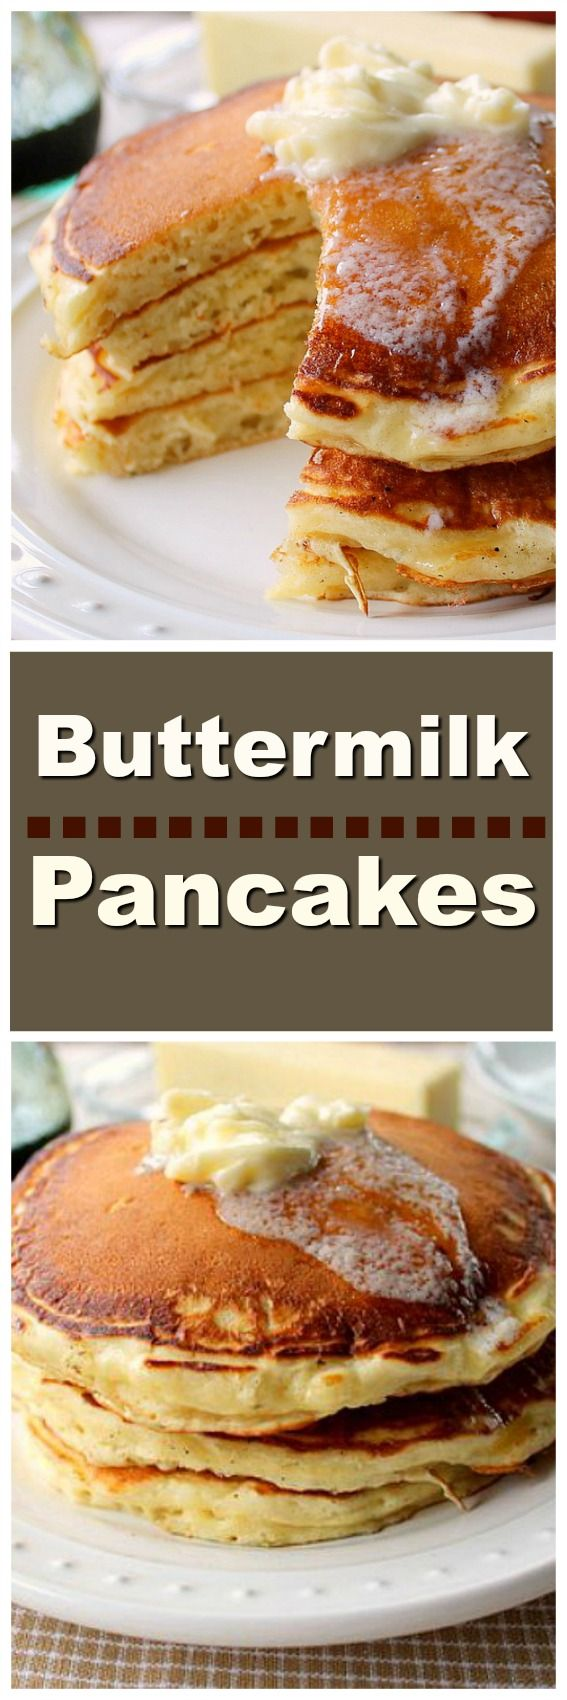 The Best Buttermilk Pancakes EVER! Fluffy, tall, soft homemade buttermilk pancakes, does it get any better than this!